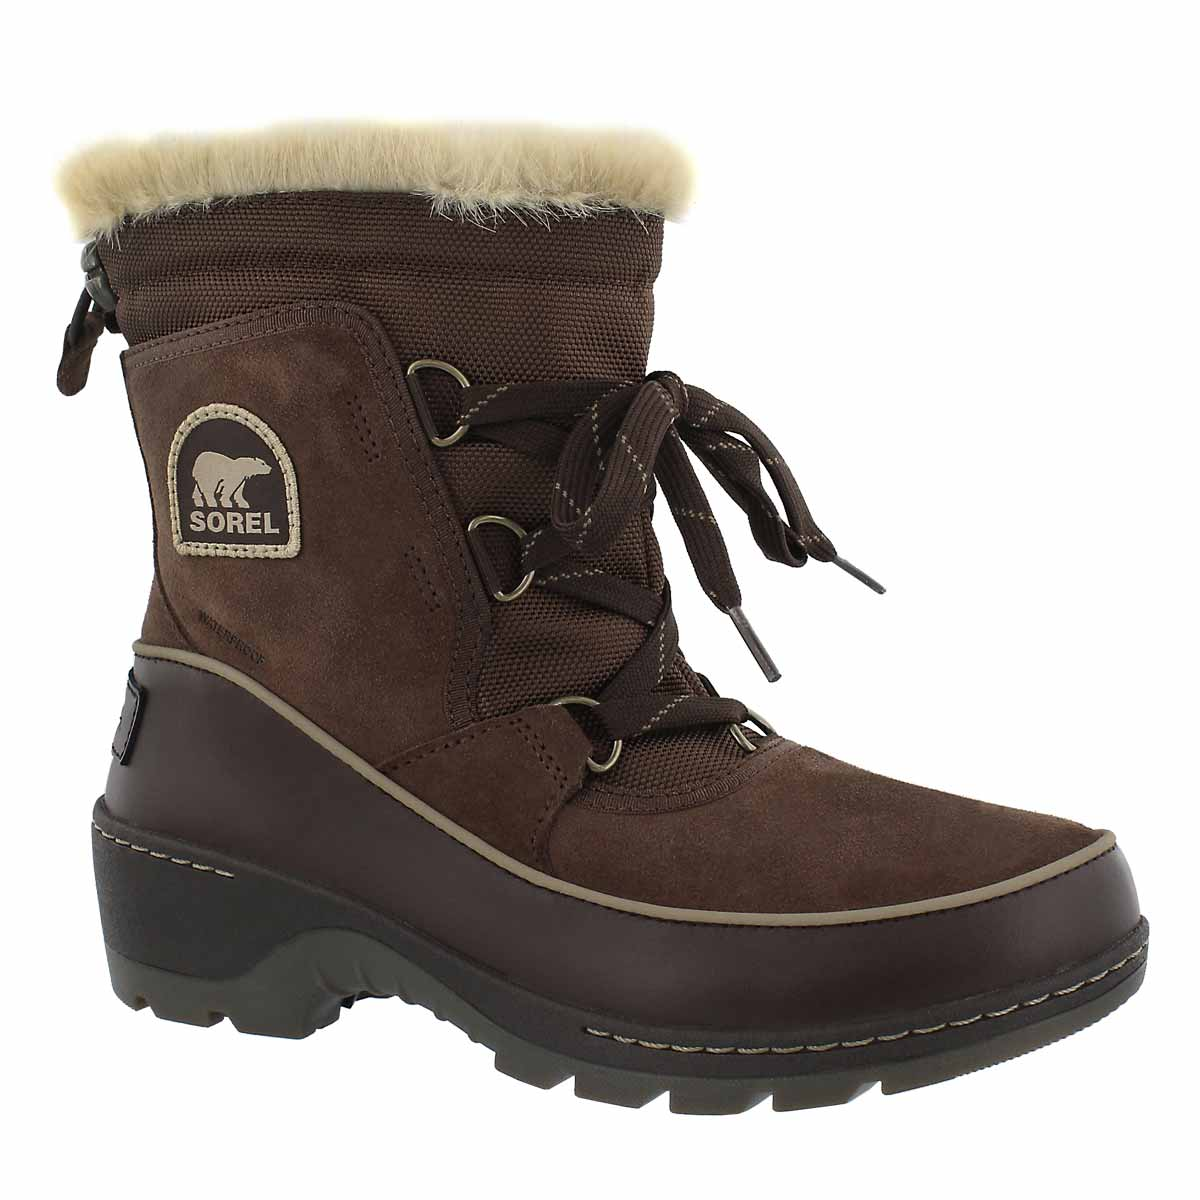 Women's TIVOLI III tobacco waterproof boots